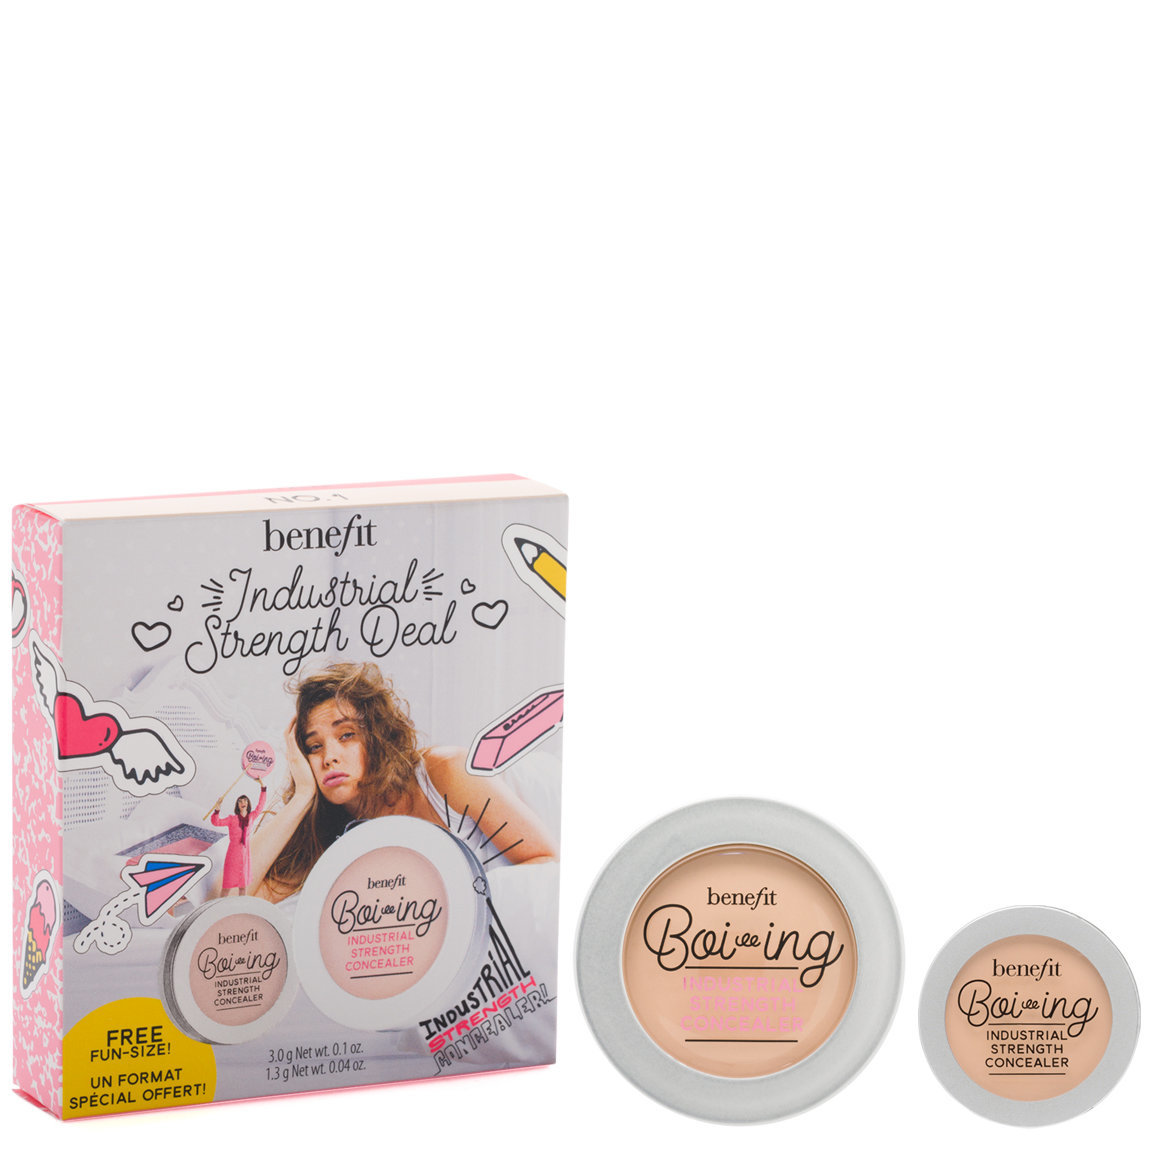 Benefit Cosmetics Industrial Strength Deal Concealer Set Shade 01